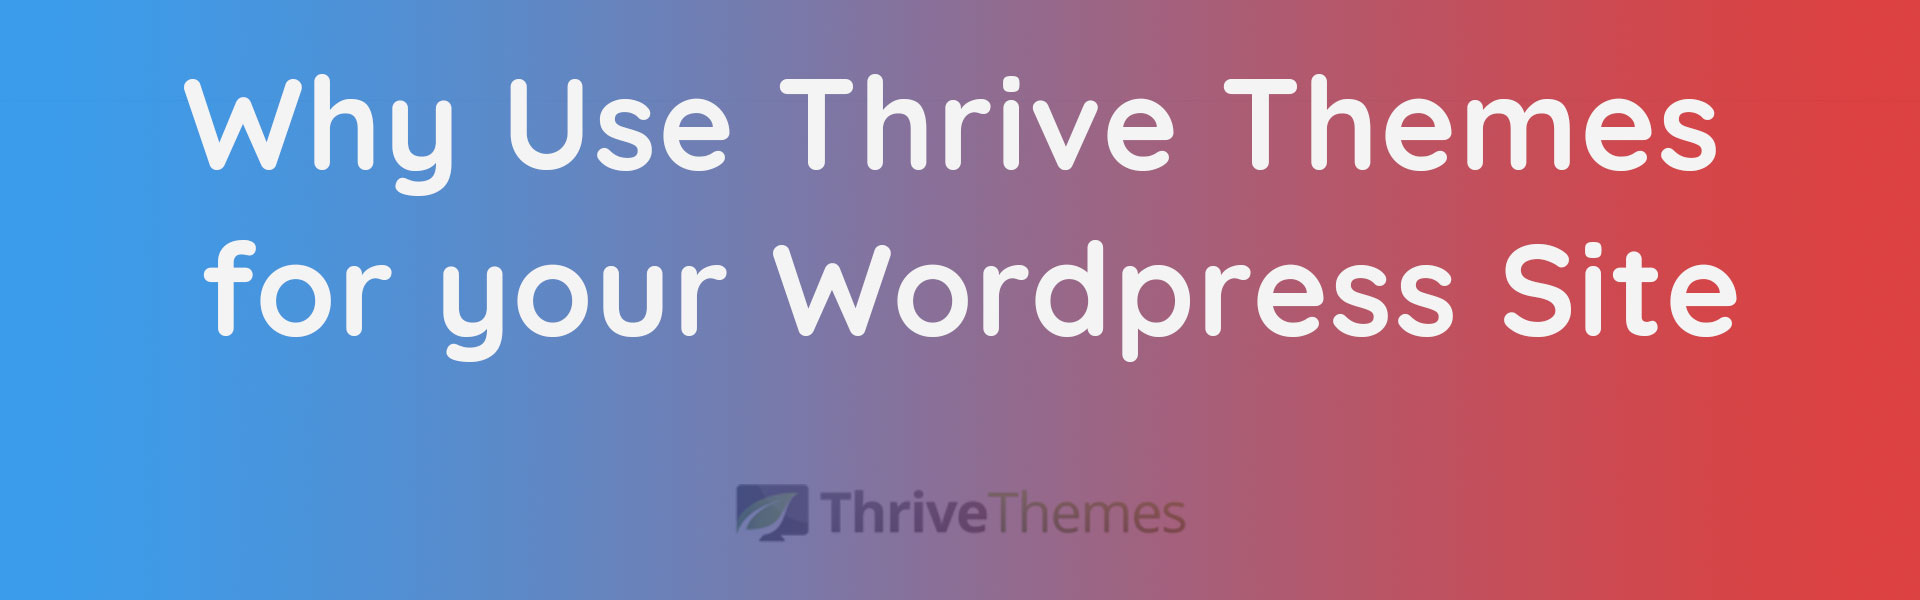 Thrive Themes Extended Warranty Coupon Code 2020